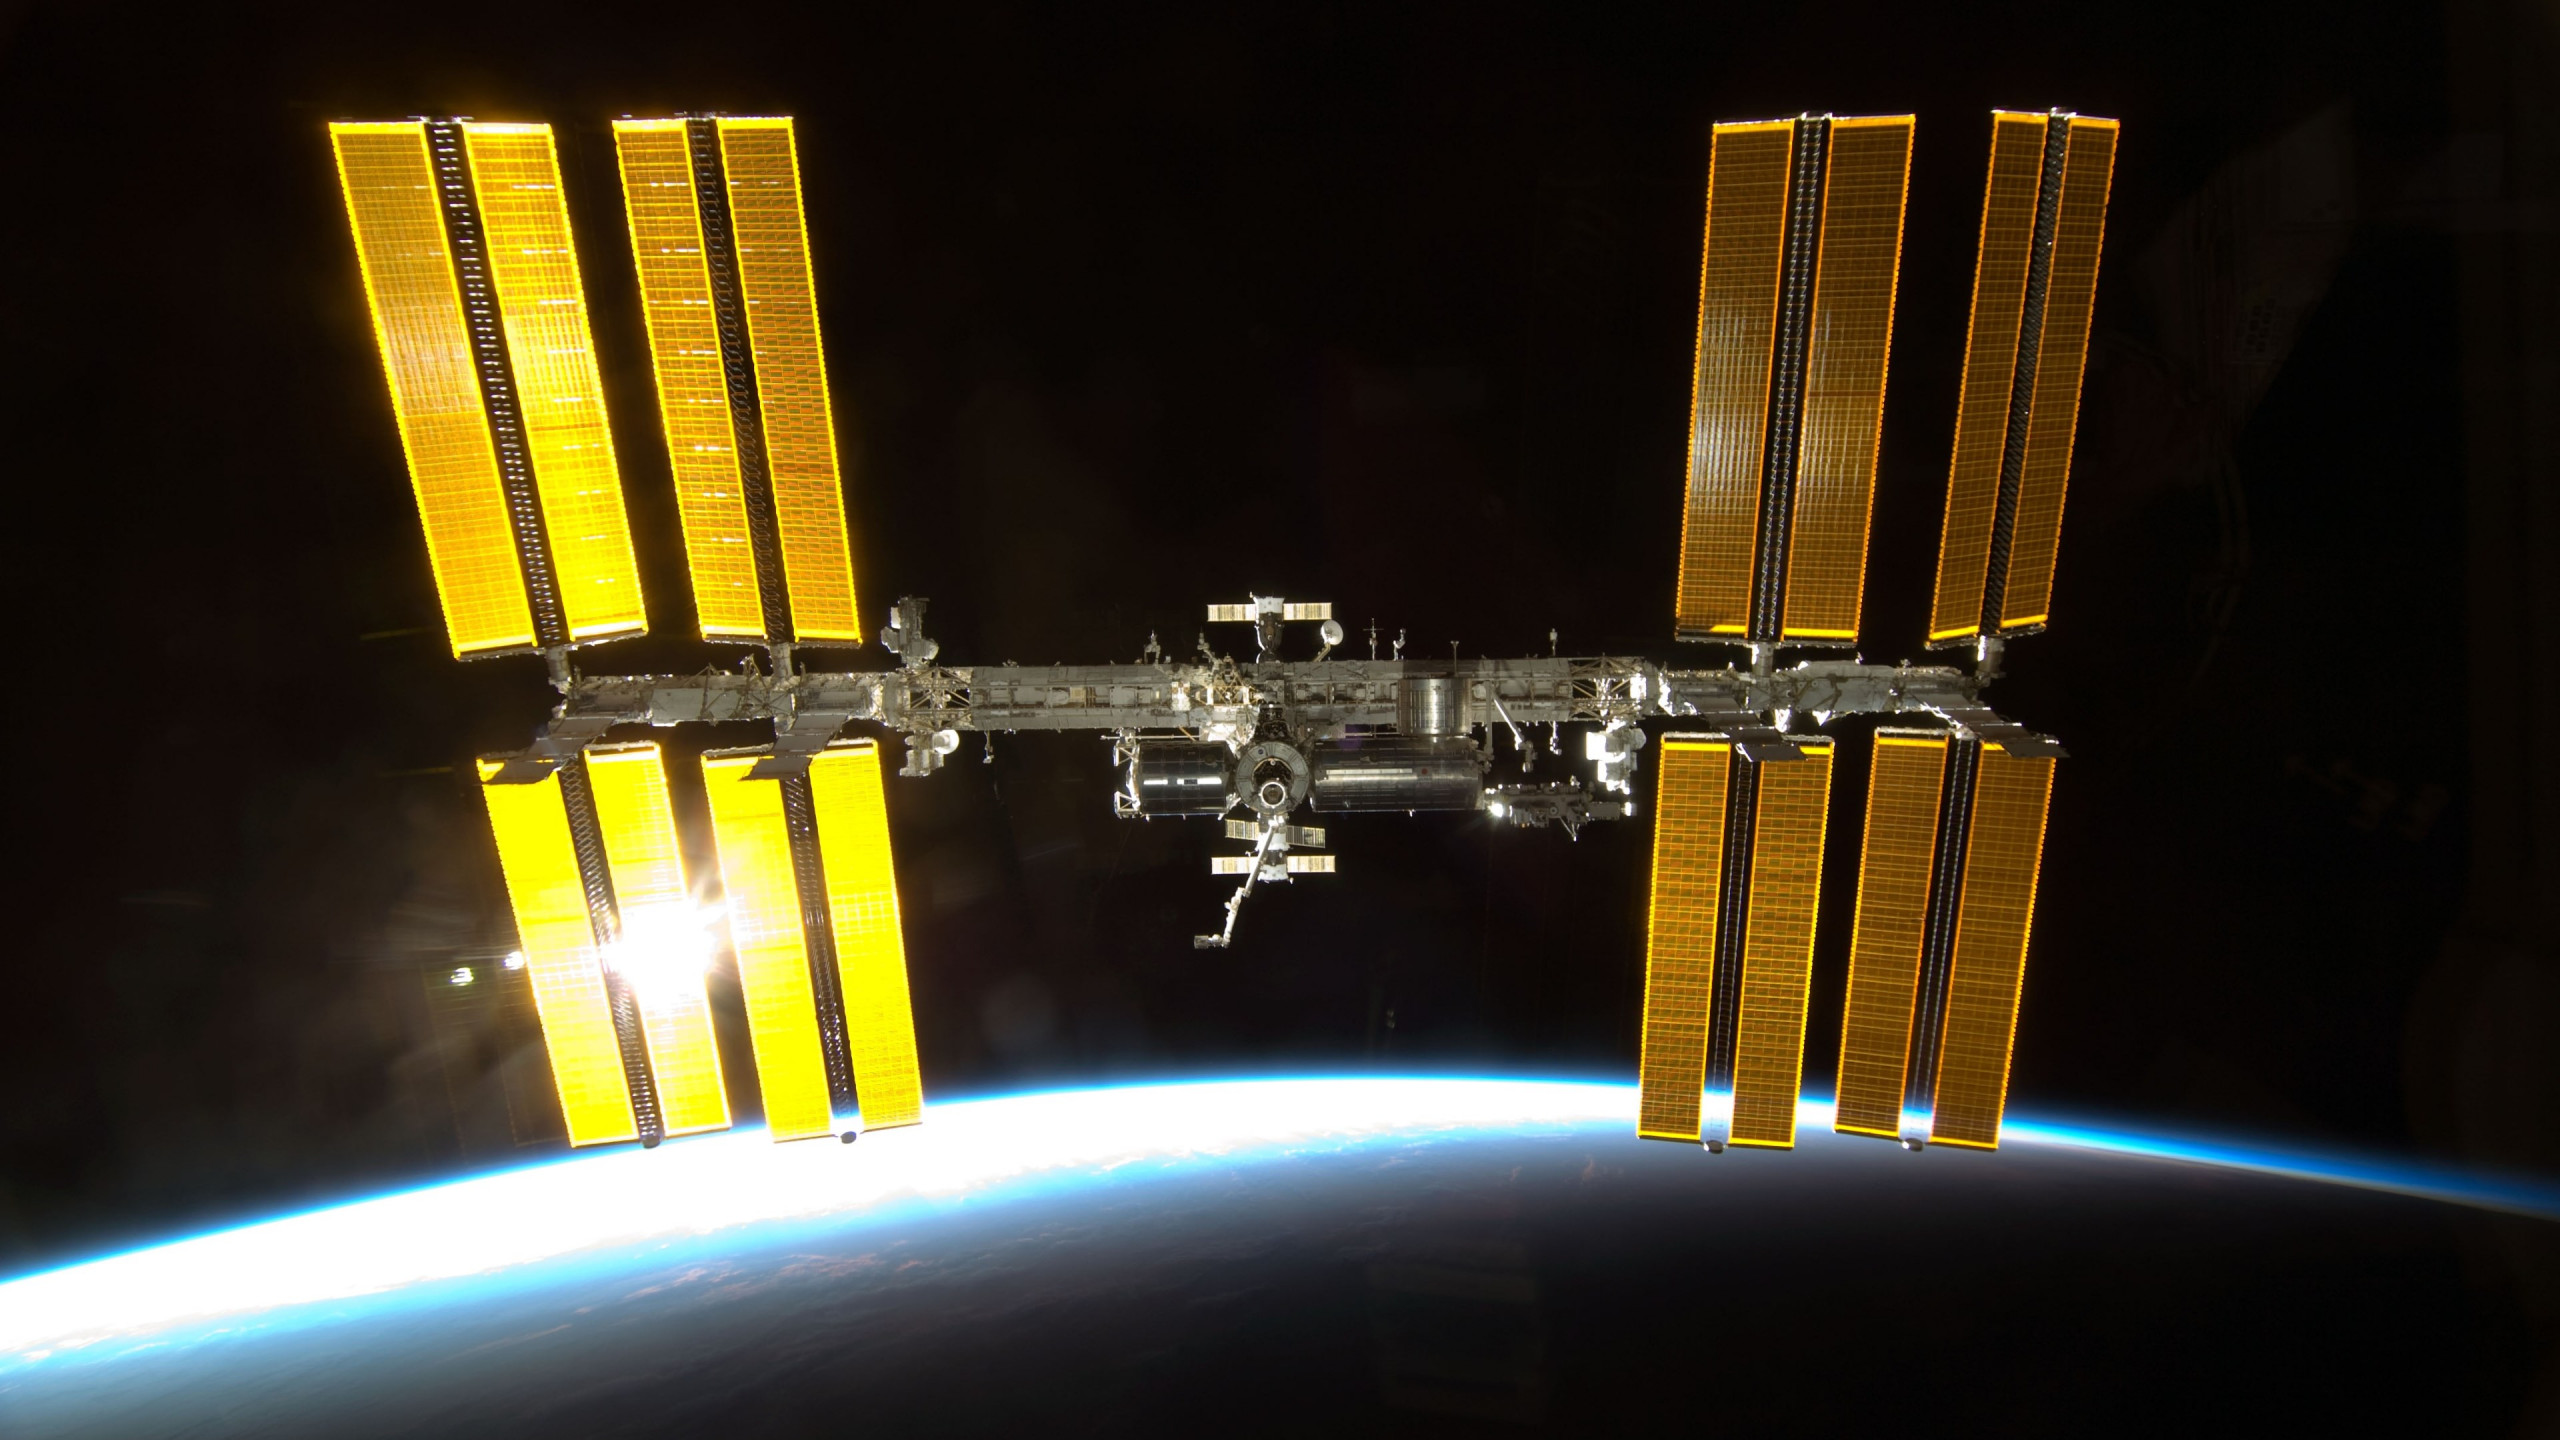 International Space Station wallpaper 2560x1440